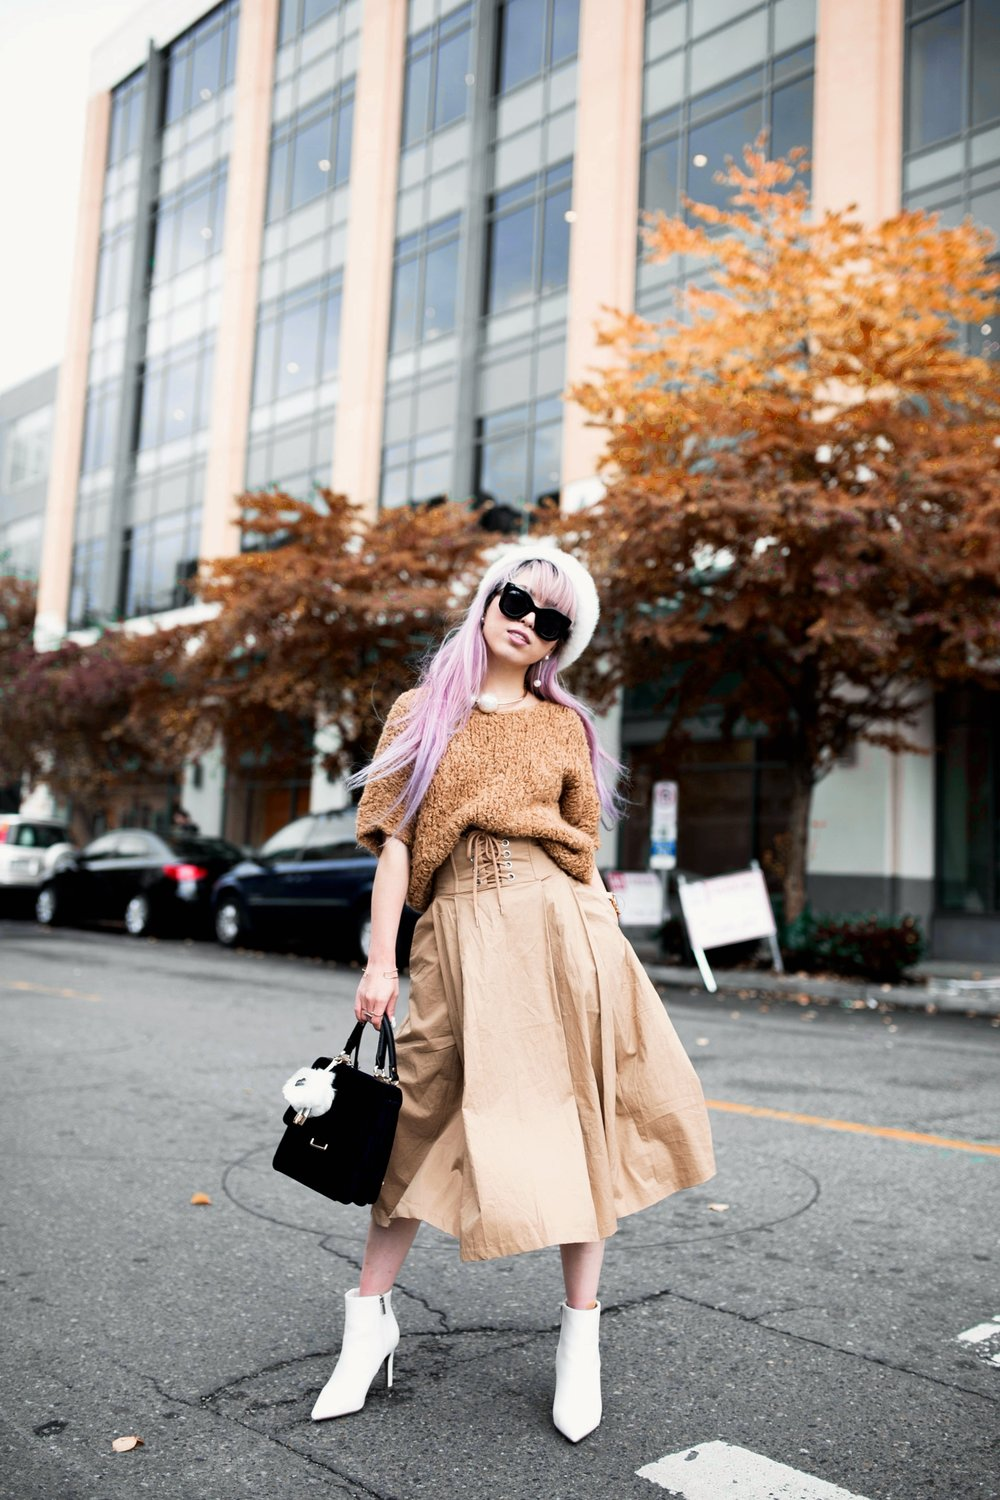 Forever 21 Fluffy White Beret, Express Pearl Collar Necklace, Thrifted Teddy Camel Top, H&M High-waisted camel midi skirt, zara velvet bag, Forever 21 White Ankle Boots, Aika's Love Closet, Seattle Fashion Style Blogger, Japanese, pink hair, street style, petite fashion  6